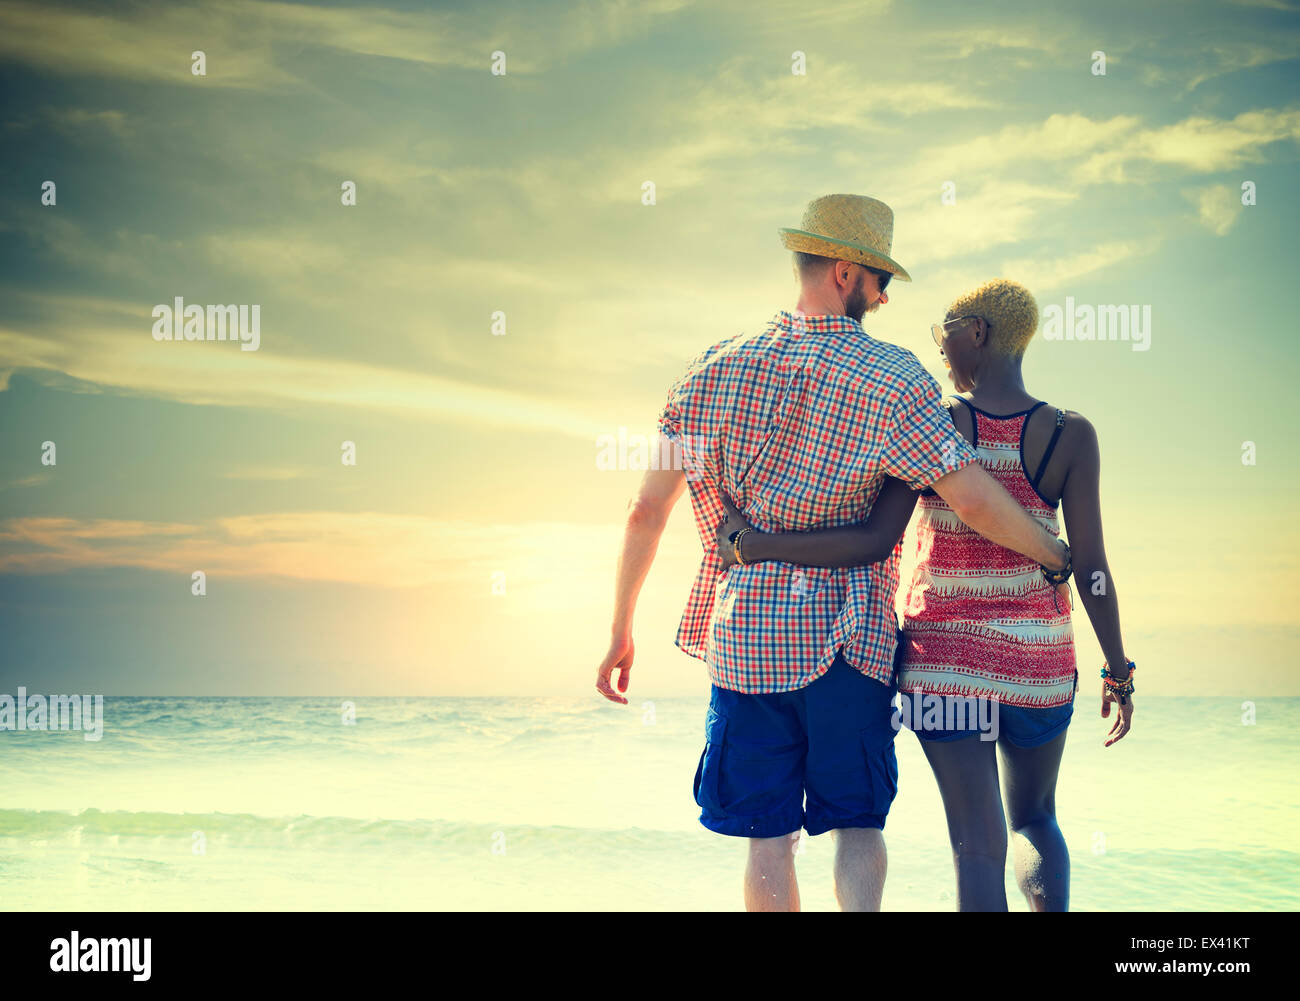 Sweet Beach Summer Holiday Couple Love Concept - Stock Image